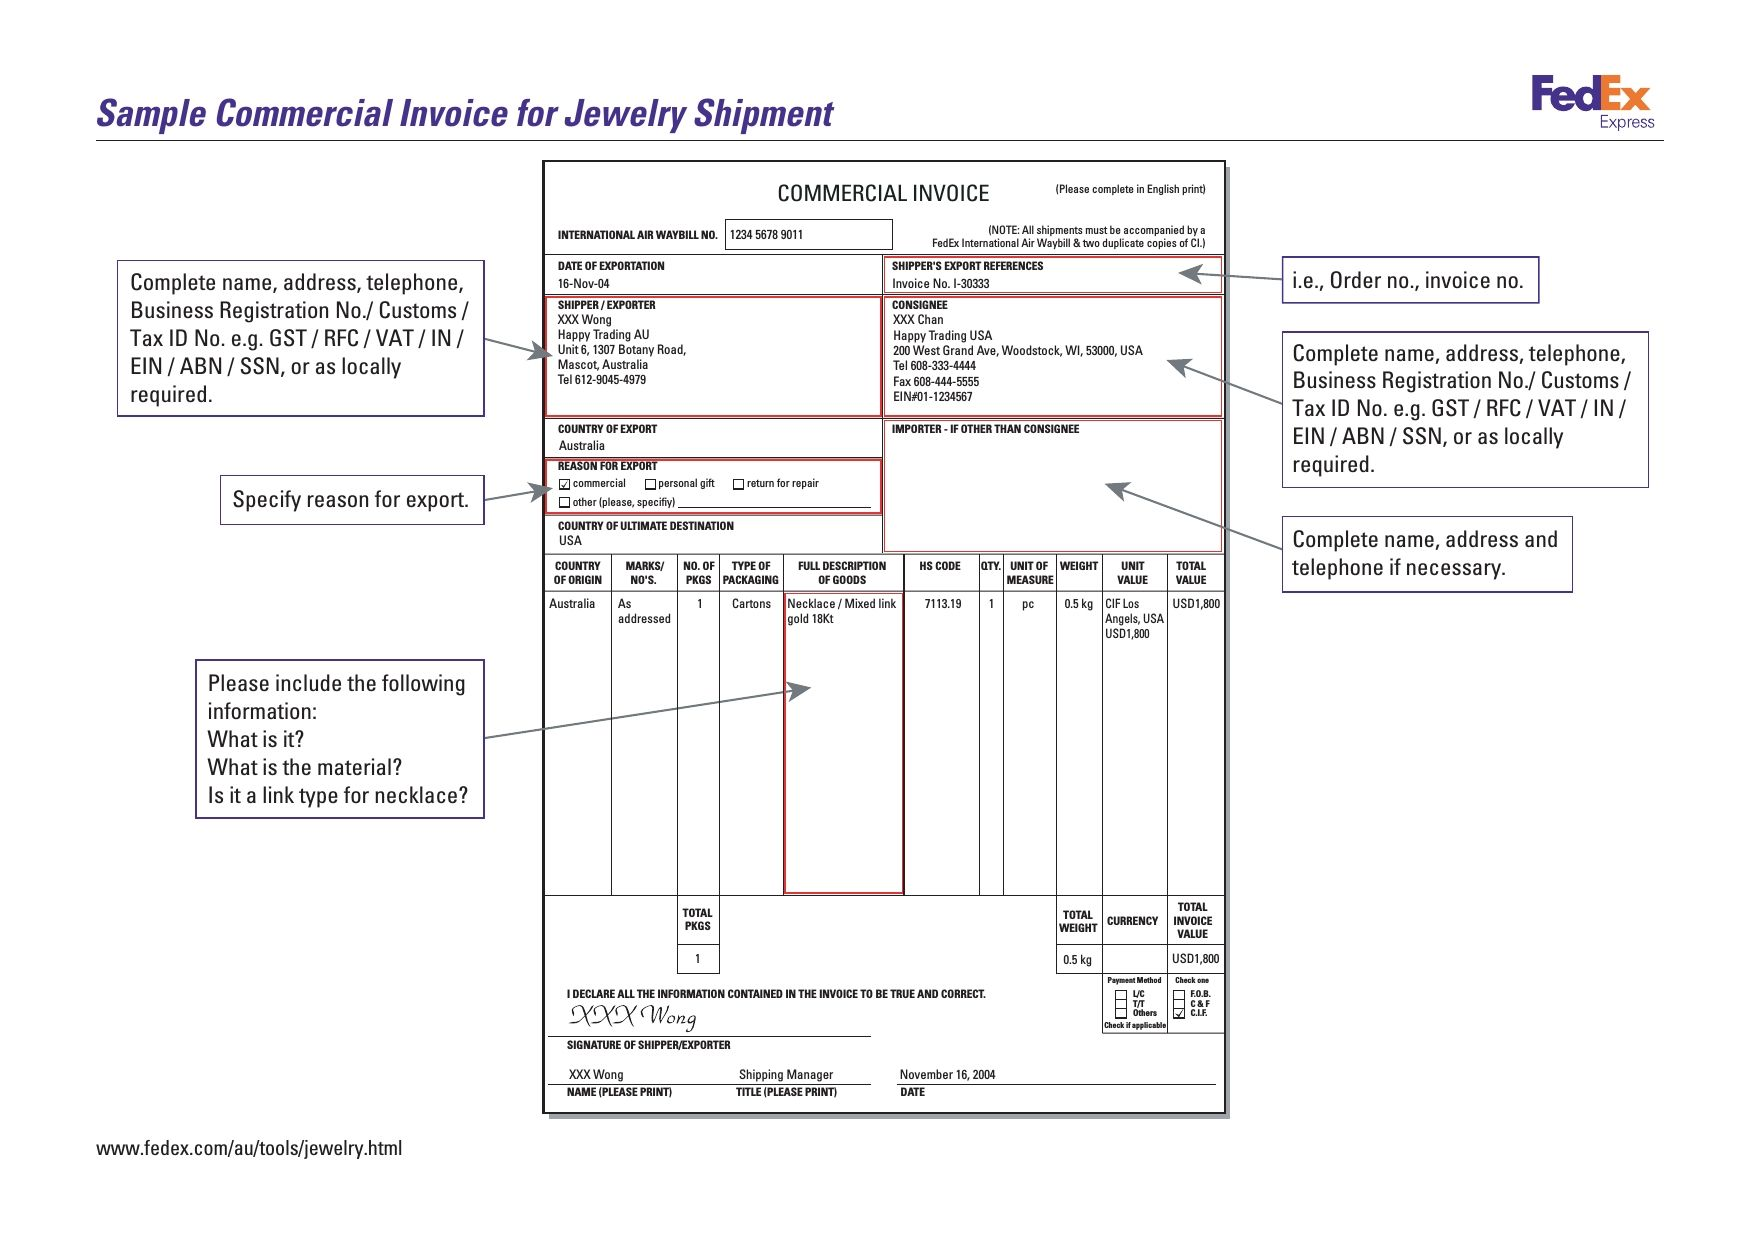 Sample Commercial Invoice For Jewelry Shipment No Commercial Value - Commercial invoice template free